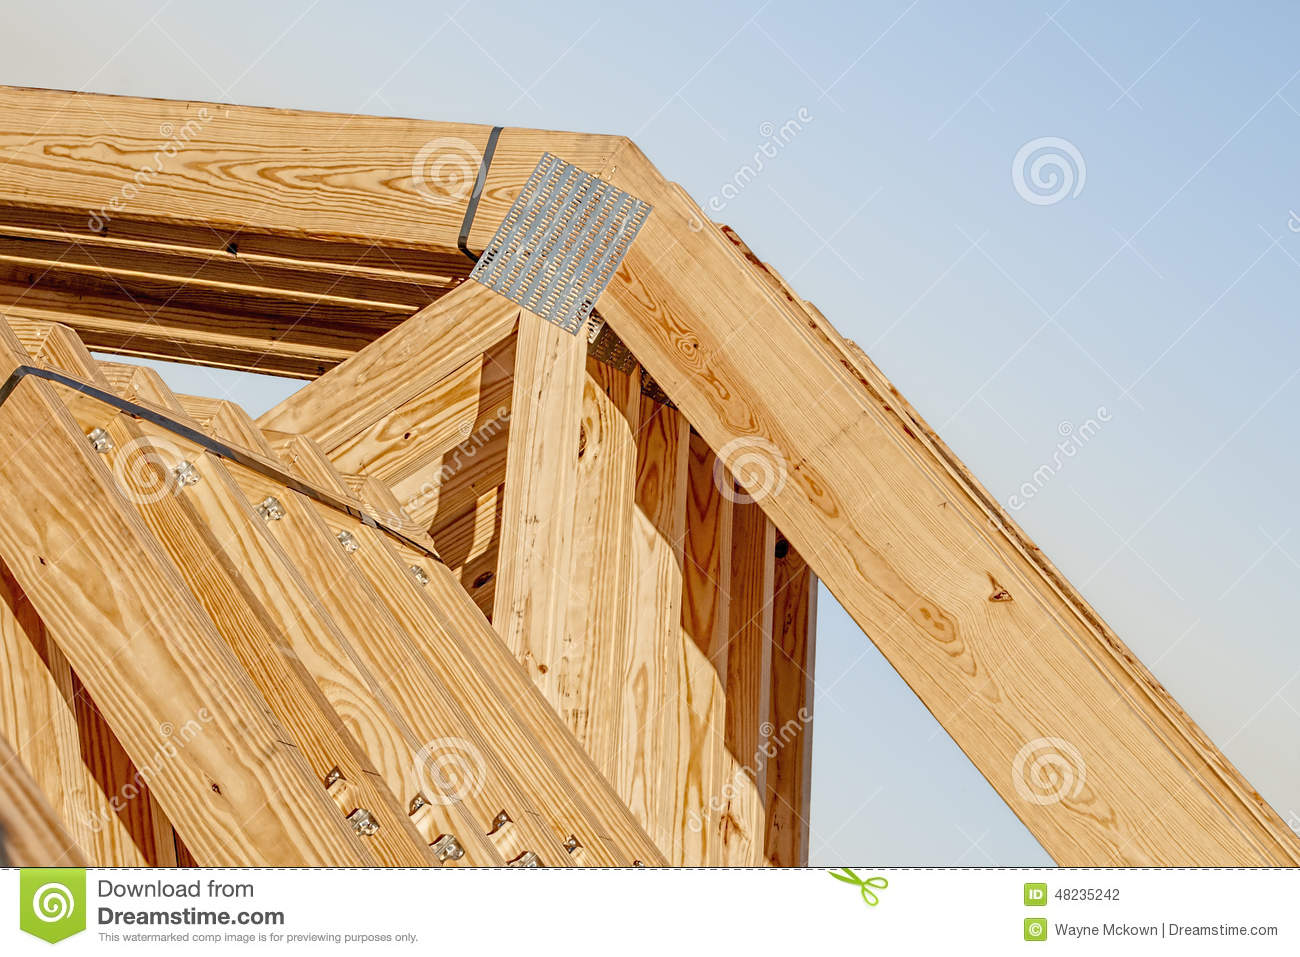 New Wood Pine Trusses With Metal Joist Hangers Attached